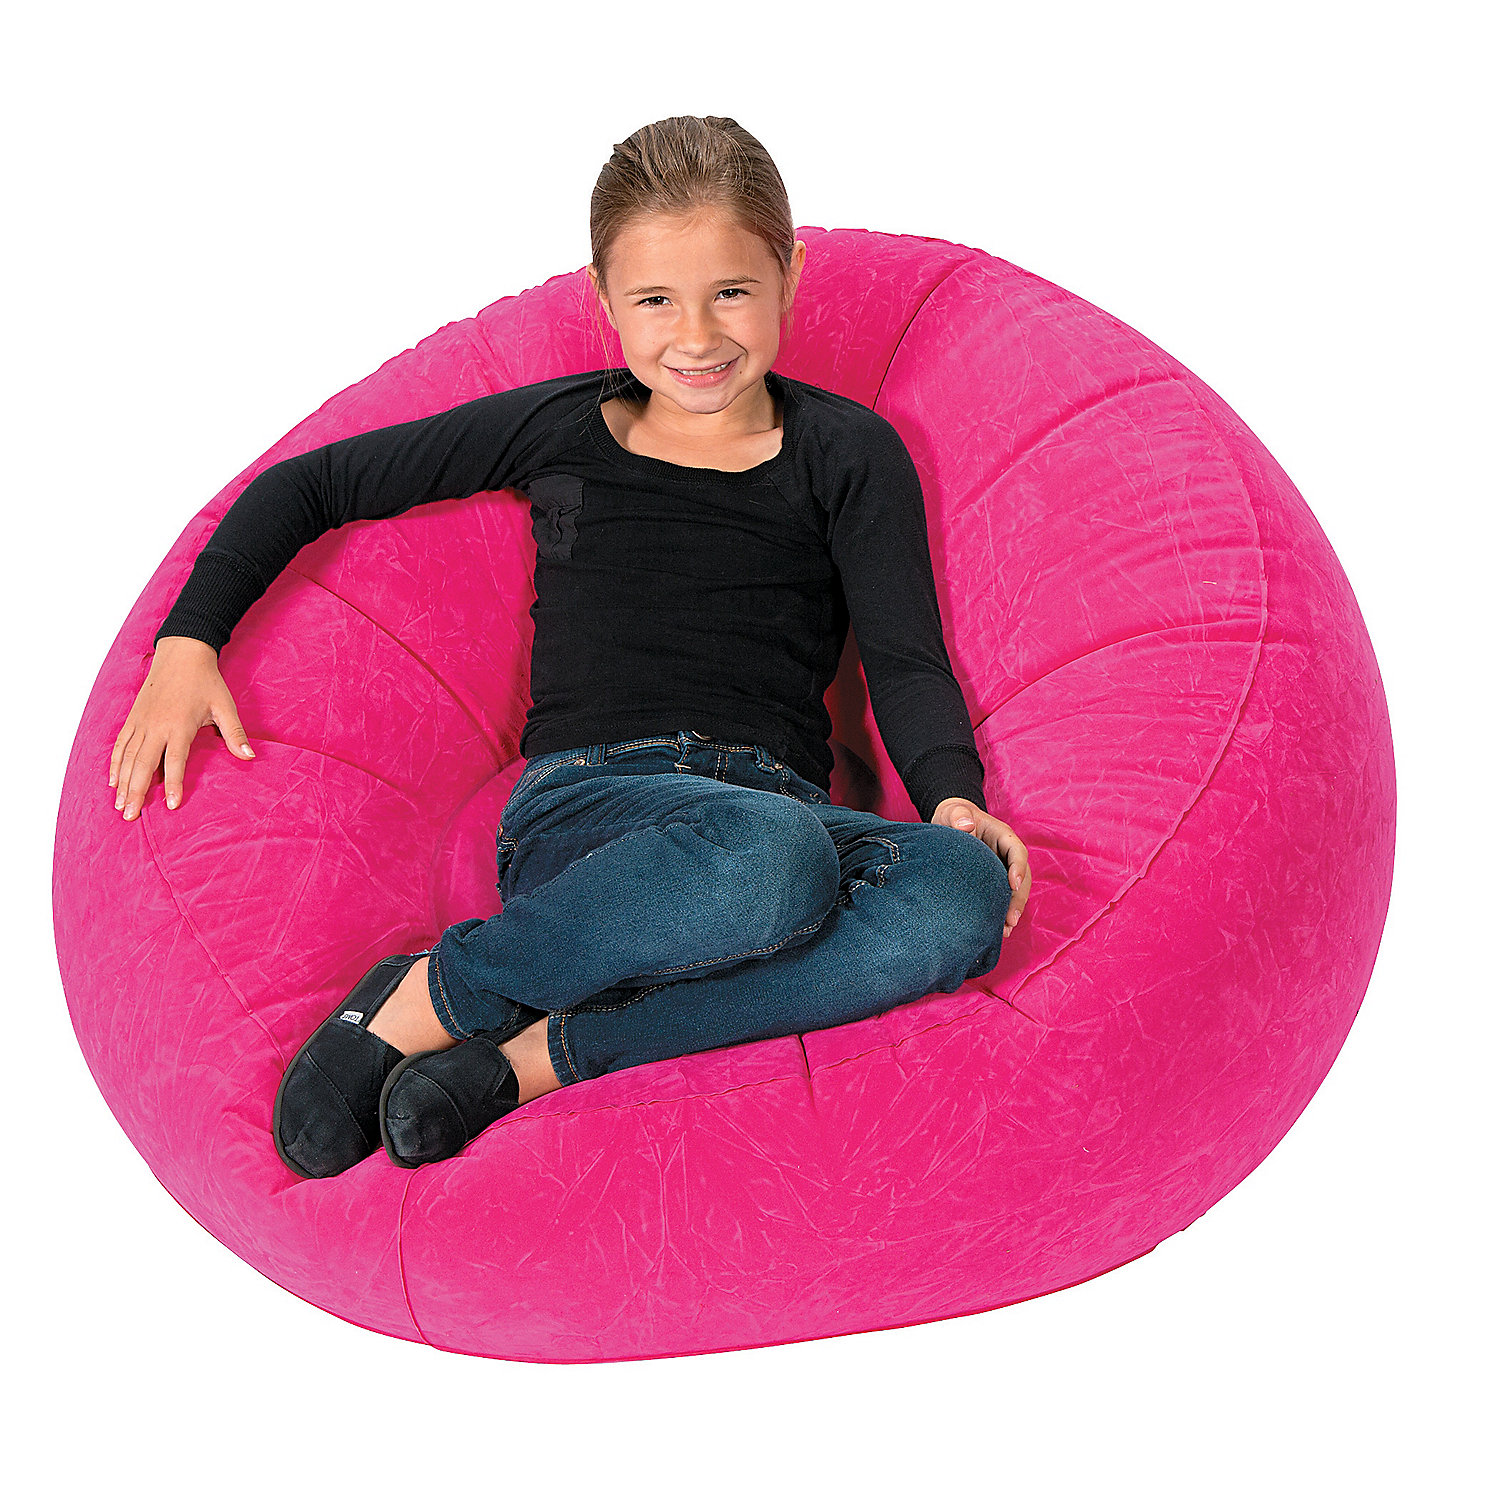 Inflatable hot pink flocked chair in 13616686 this vinyl chair is